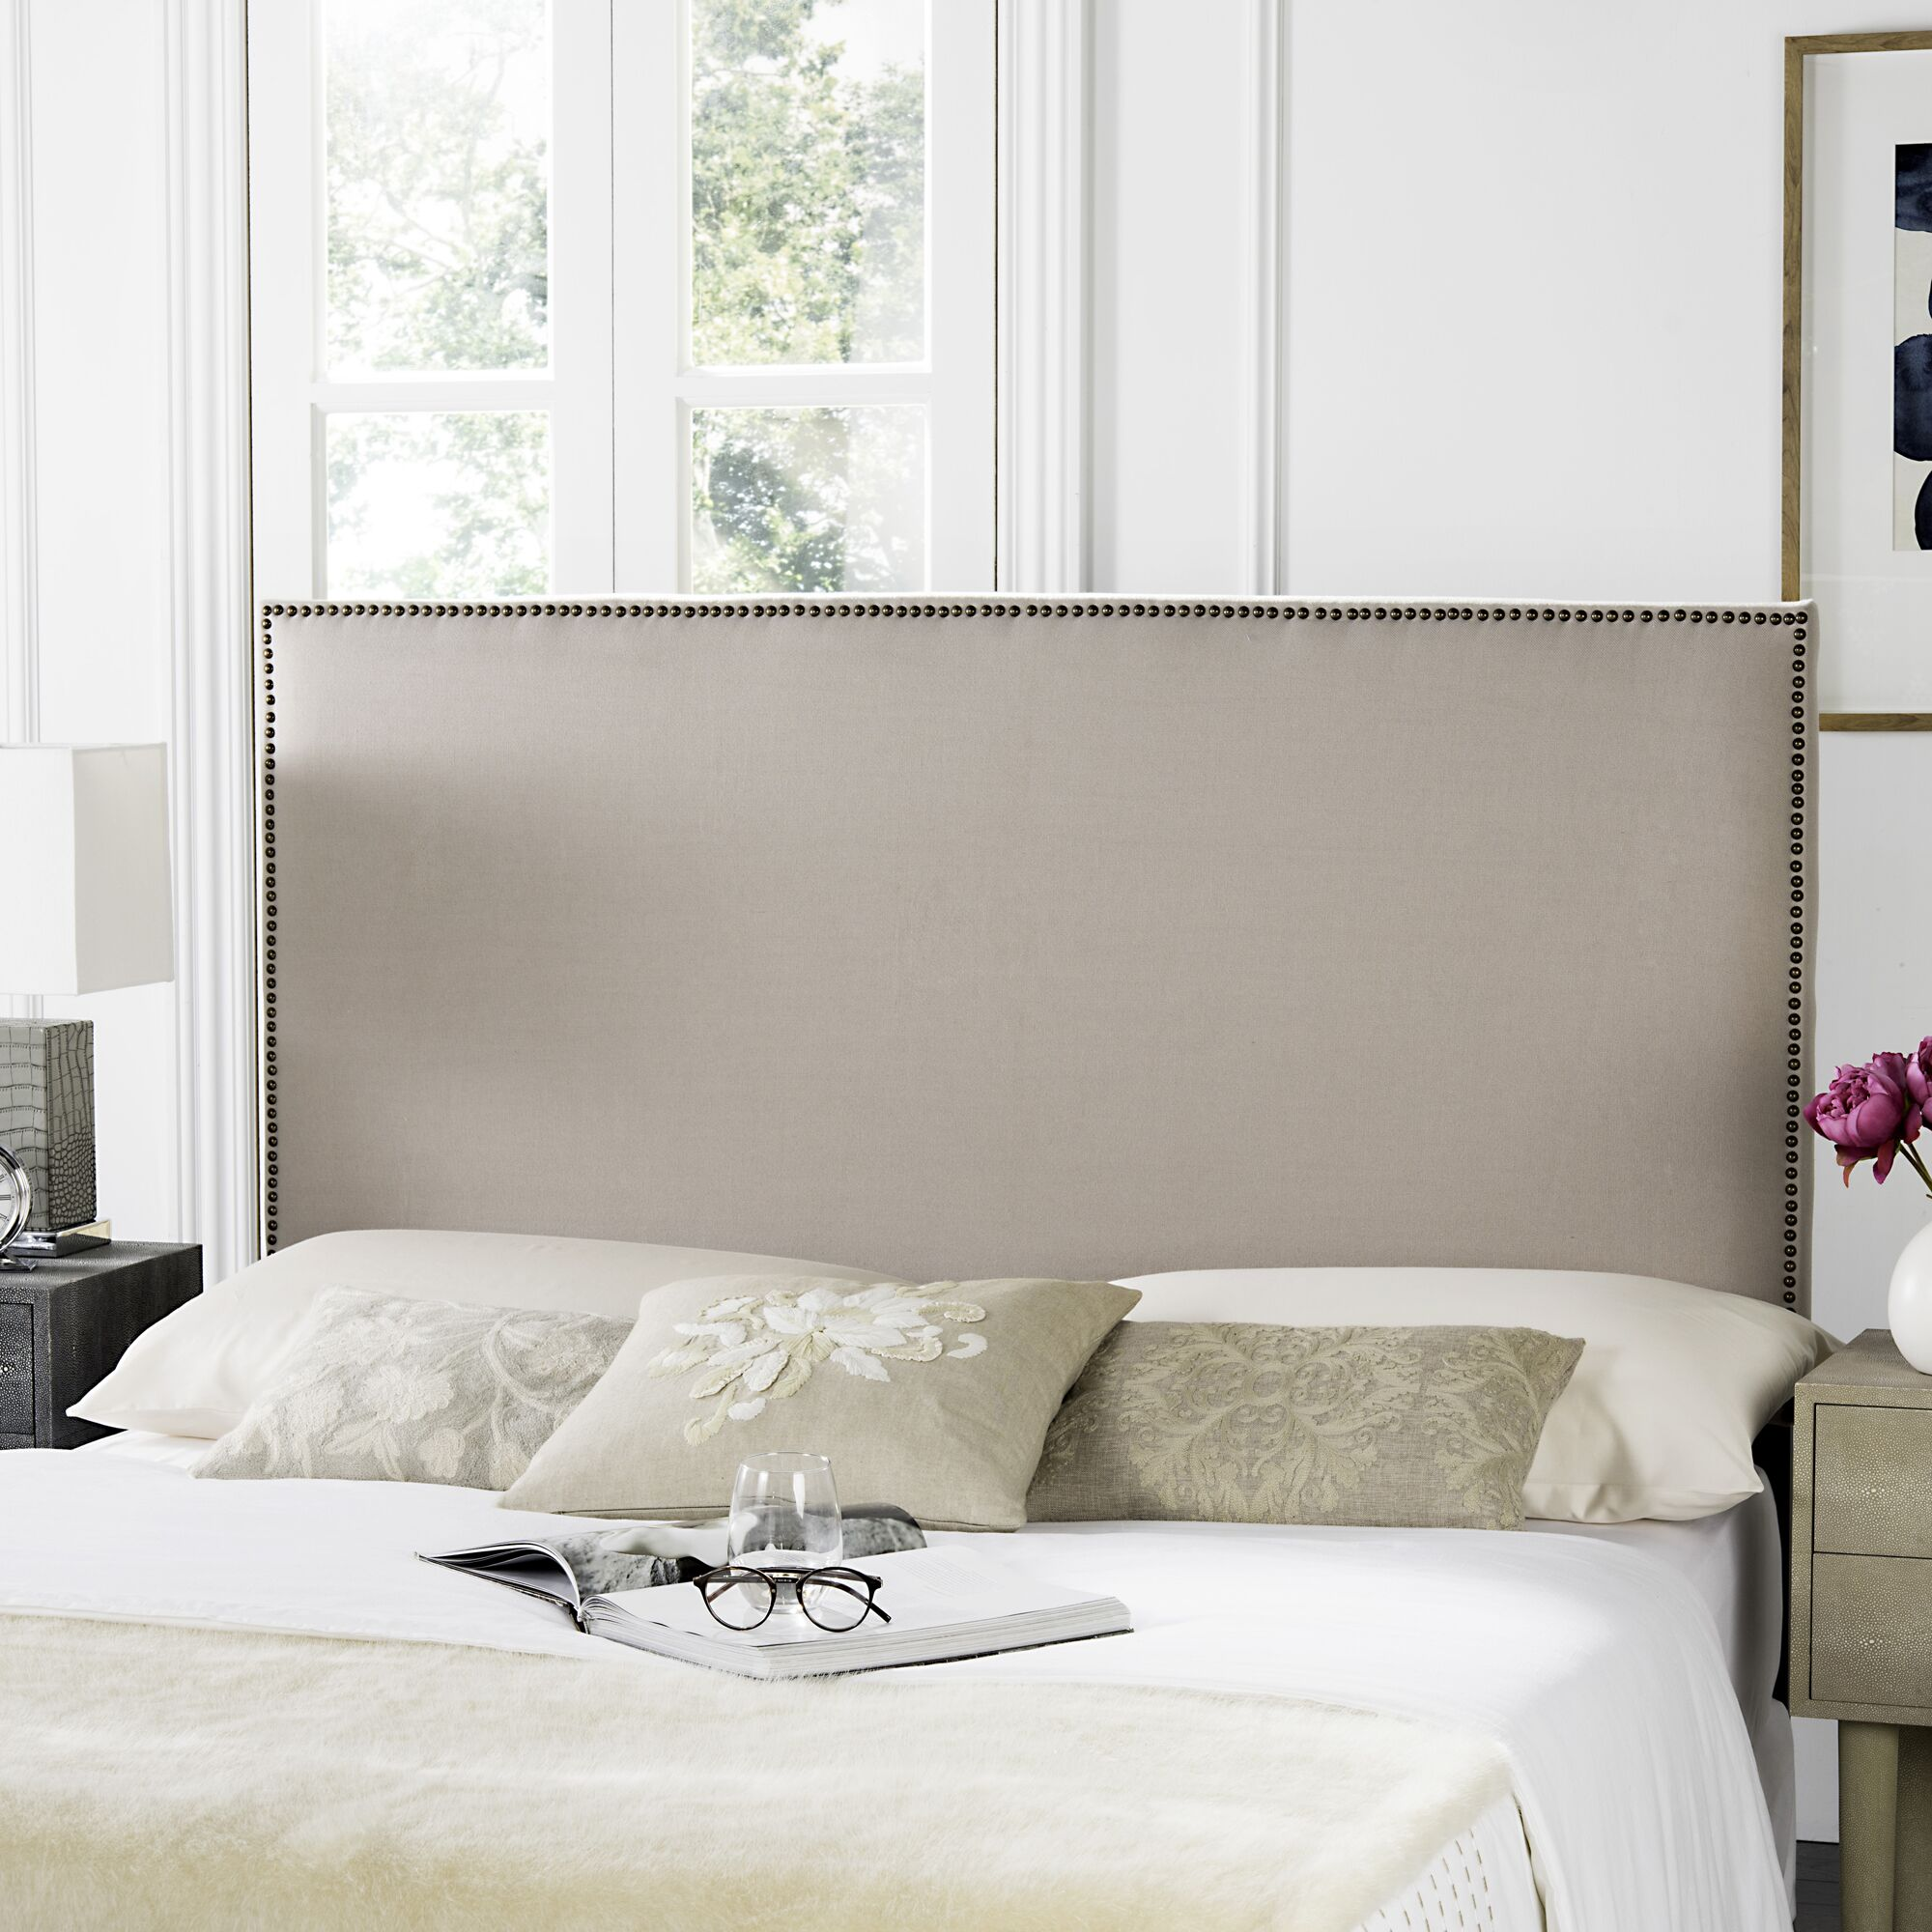 Farringdon Upholstered Wingback Headboard Upholstery: Linen Taupe, Size: Twin